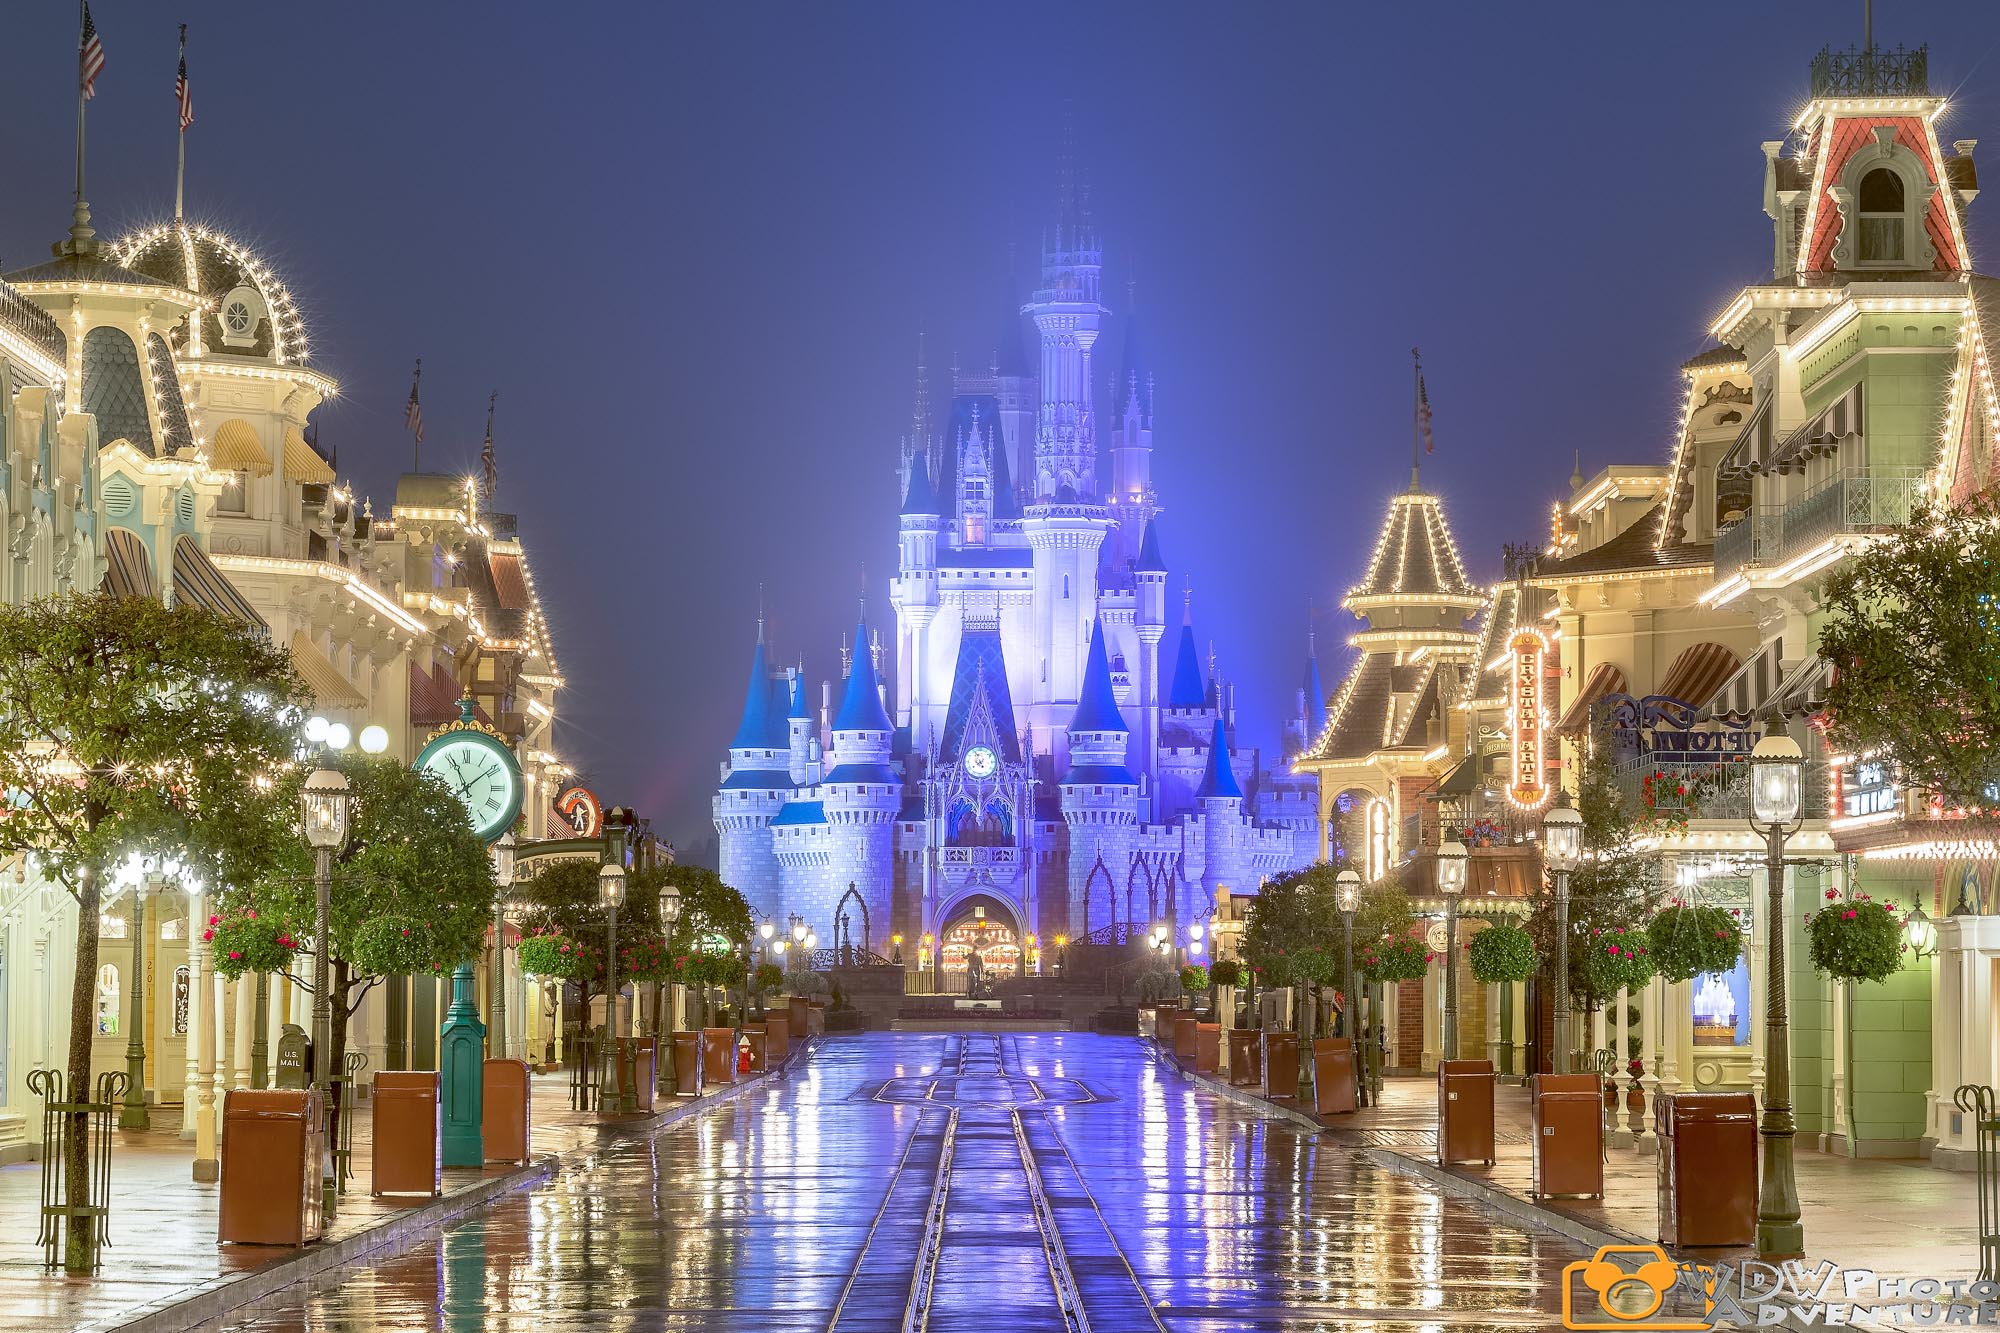 The rain on Main Street at night